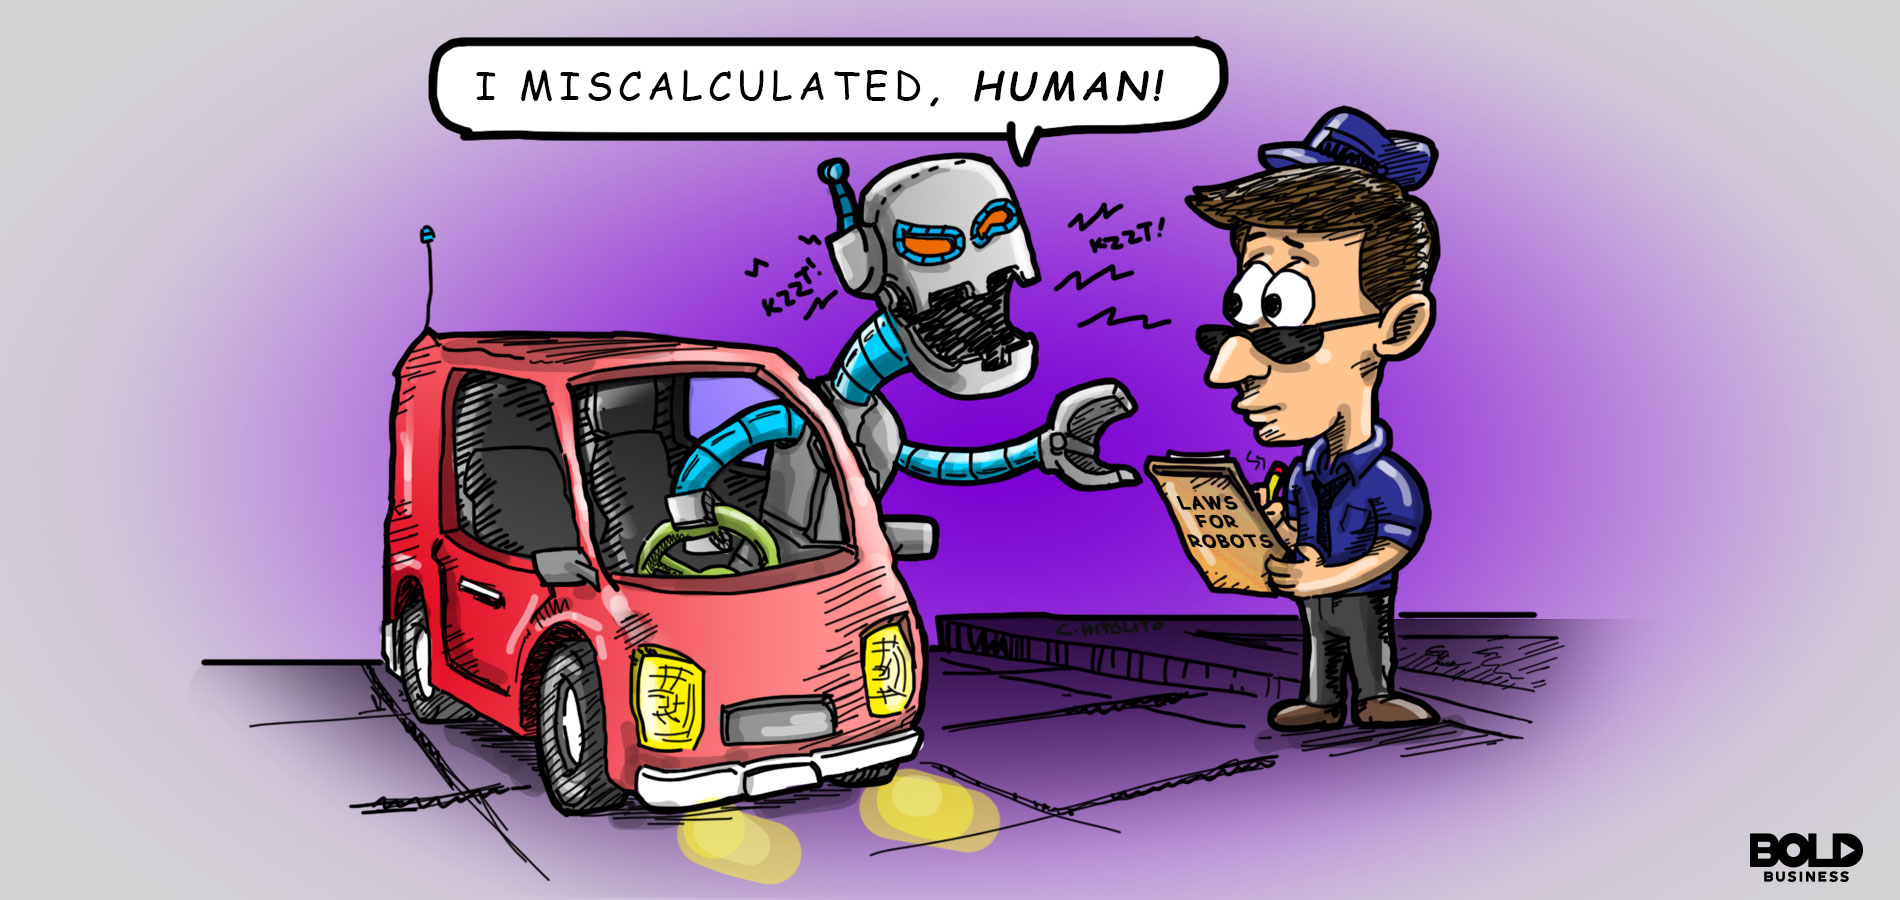 a cartoon showing a robot driving a car and talking to a police officer